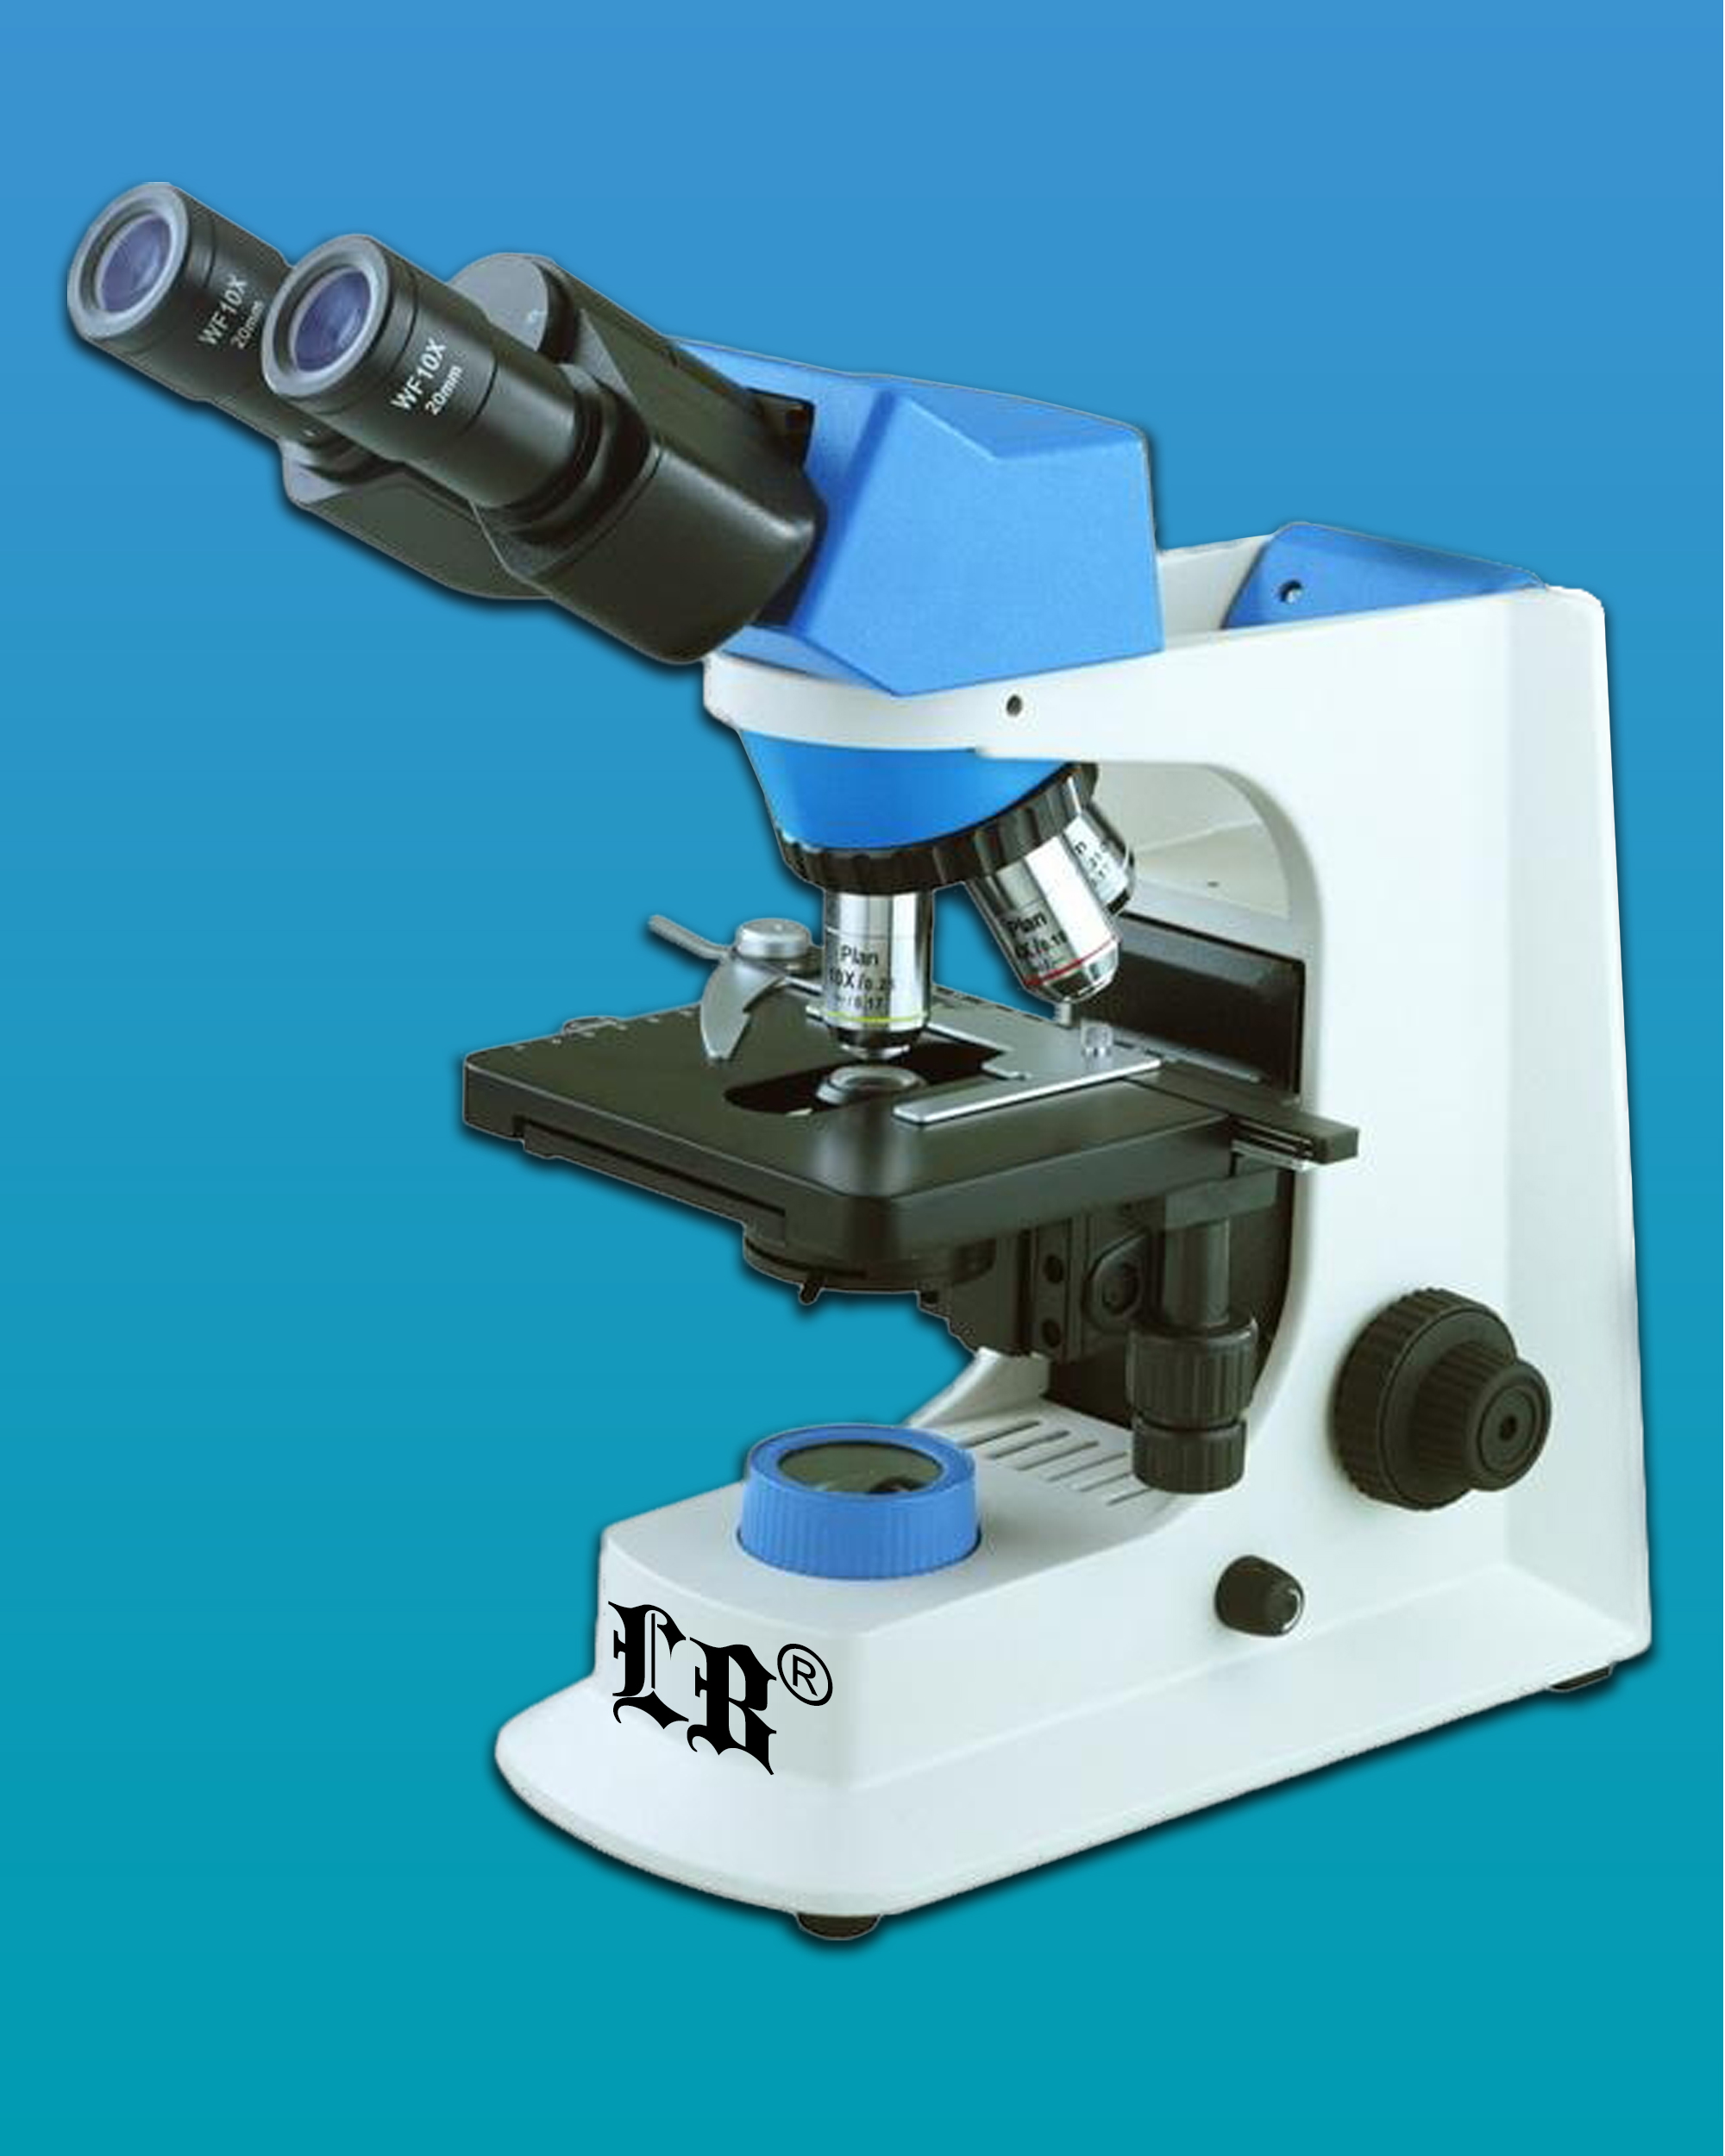 [LB-270] Biological/ Medical Binocular Microscope w/ Infinite Optical System & Infinity Color Correction